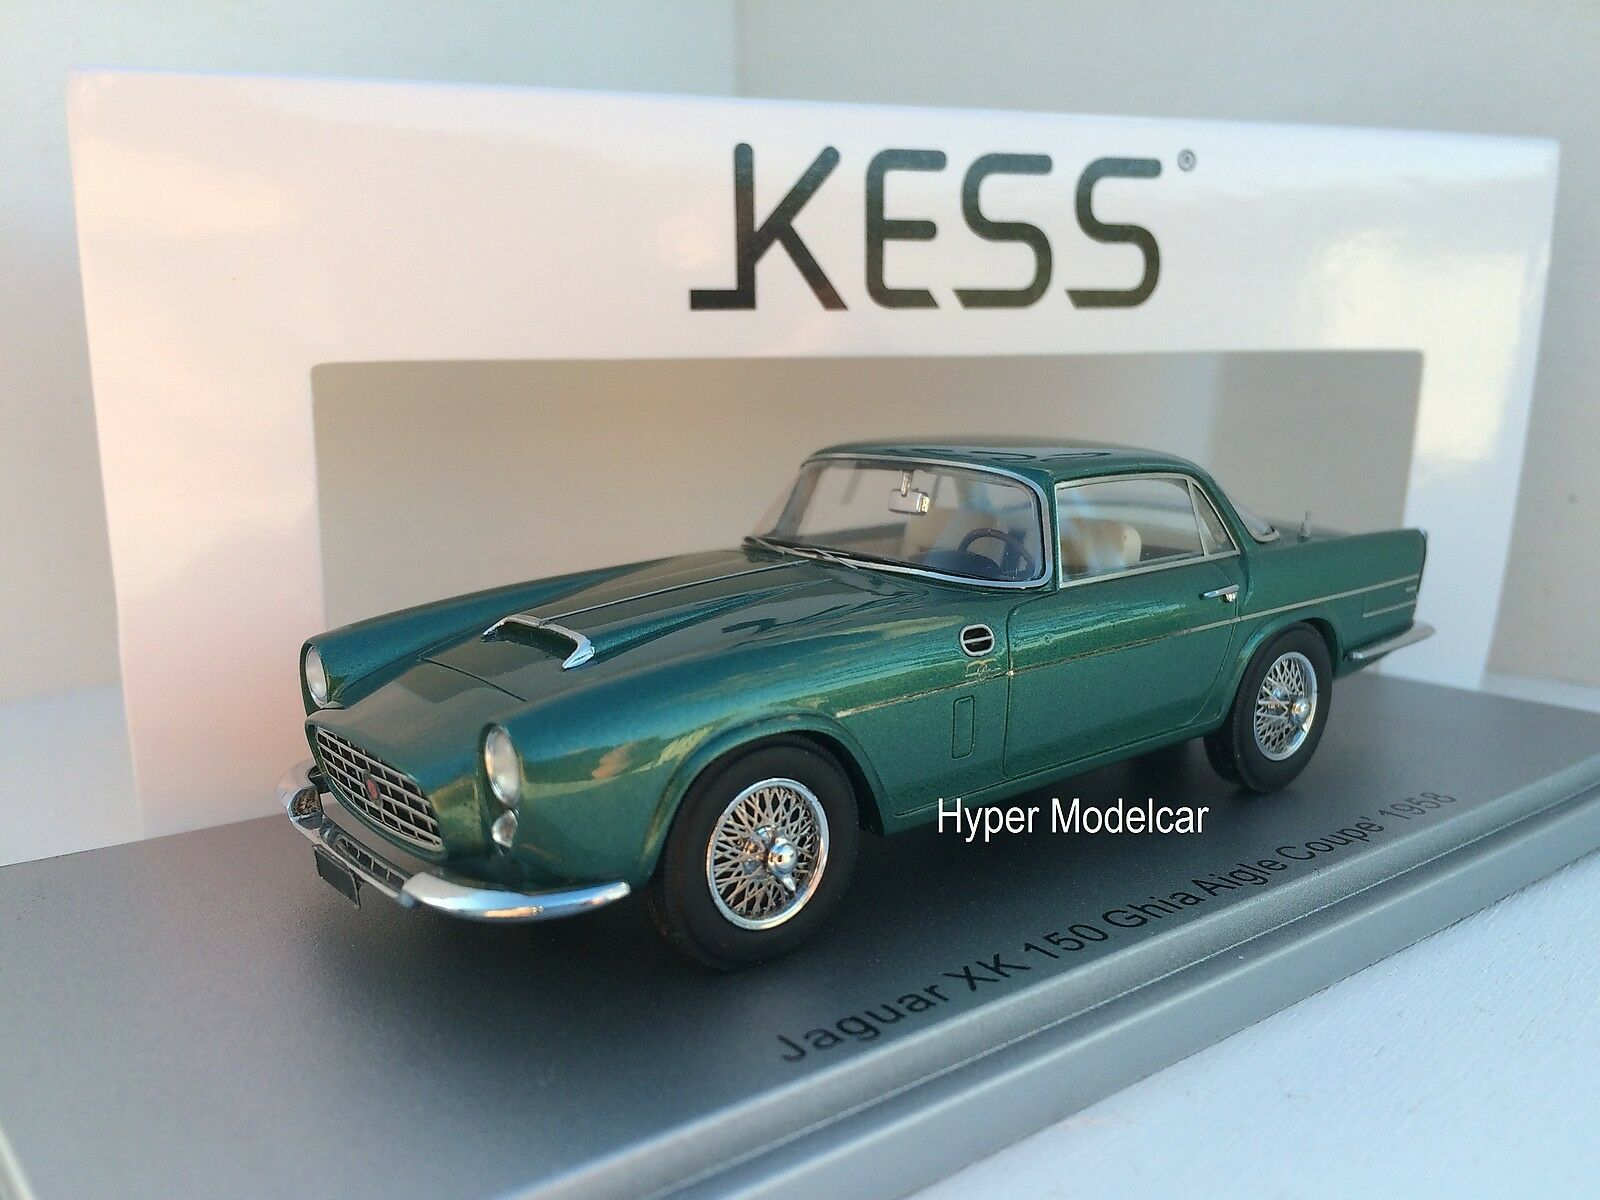 KESS MODEL 1 43 Jaguar XK150 Aigle Coupè 1958 verde Met. Art. KE43029000